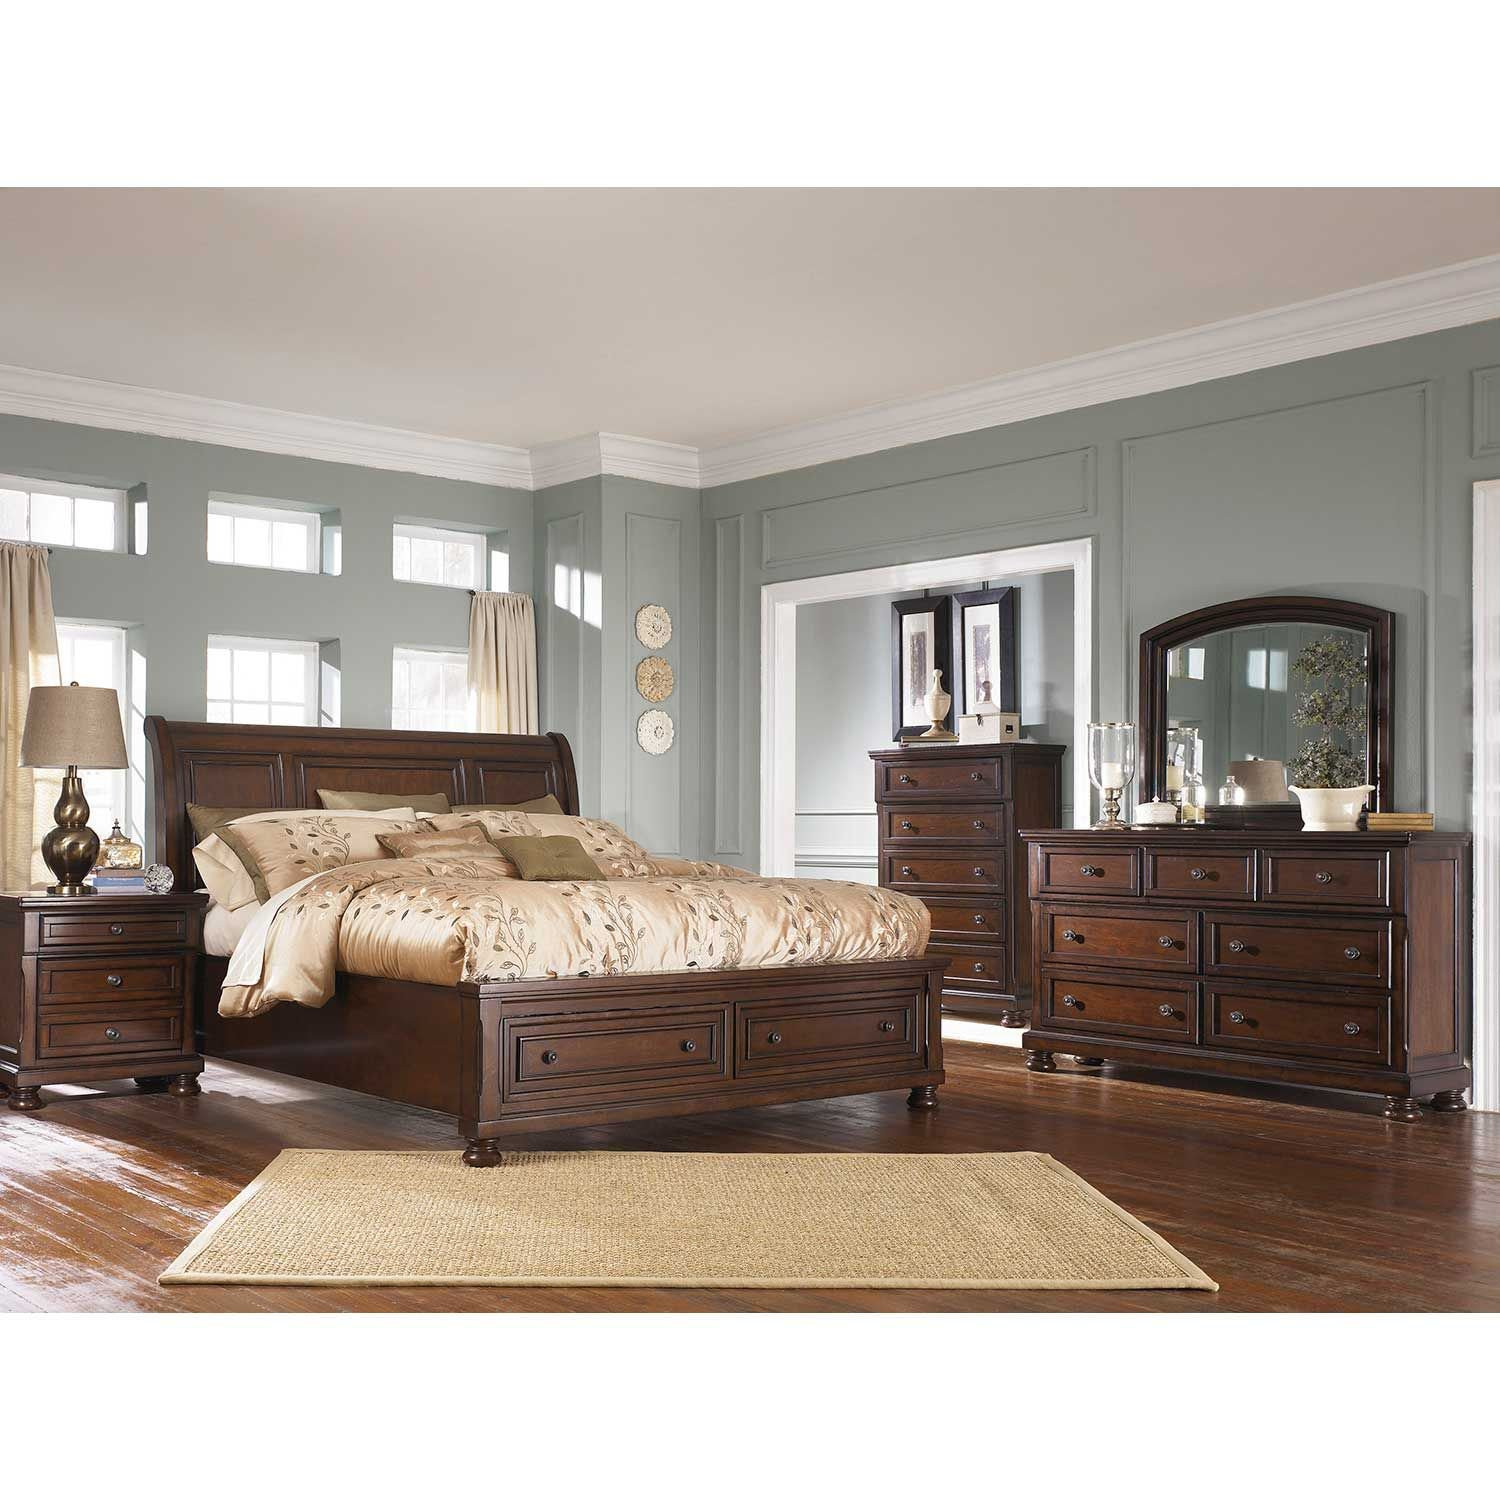 Best ideas about Ashley Bedroom Furniture . Save or Pin Porter Bedroom Set by Ashley Furniture is in Stock at AFW Now.